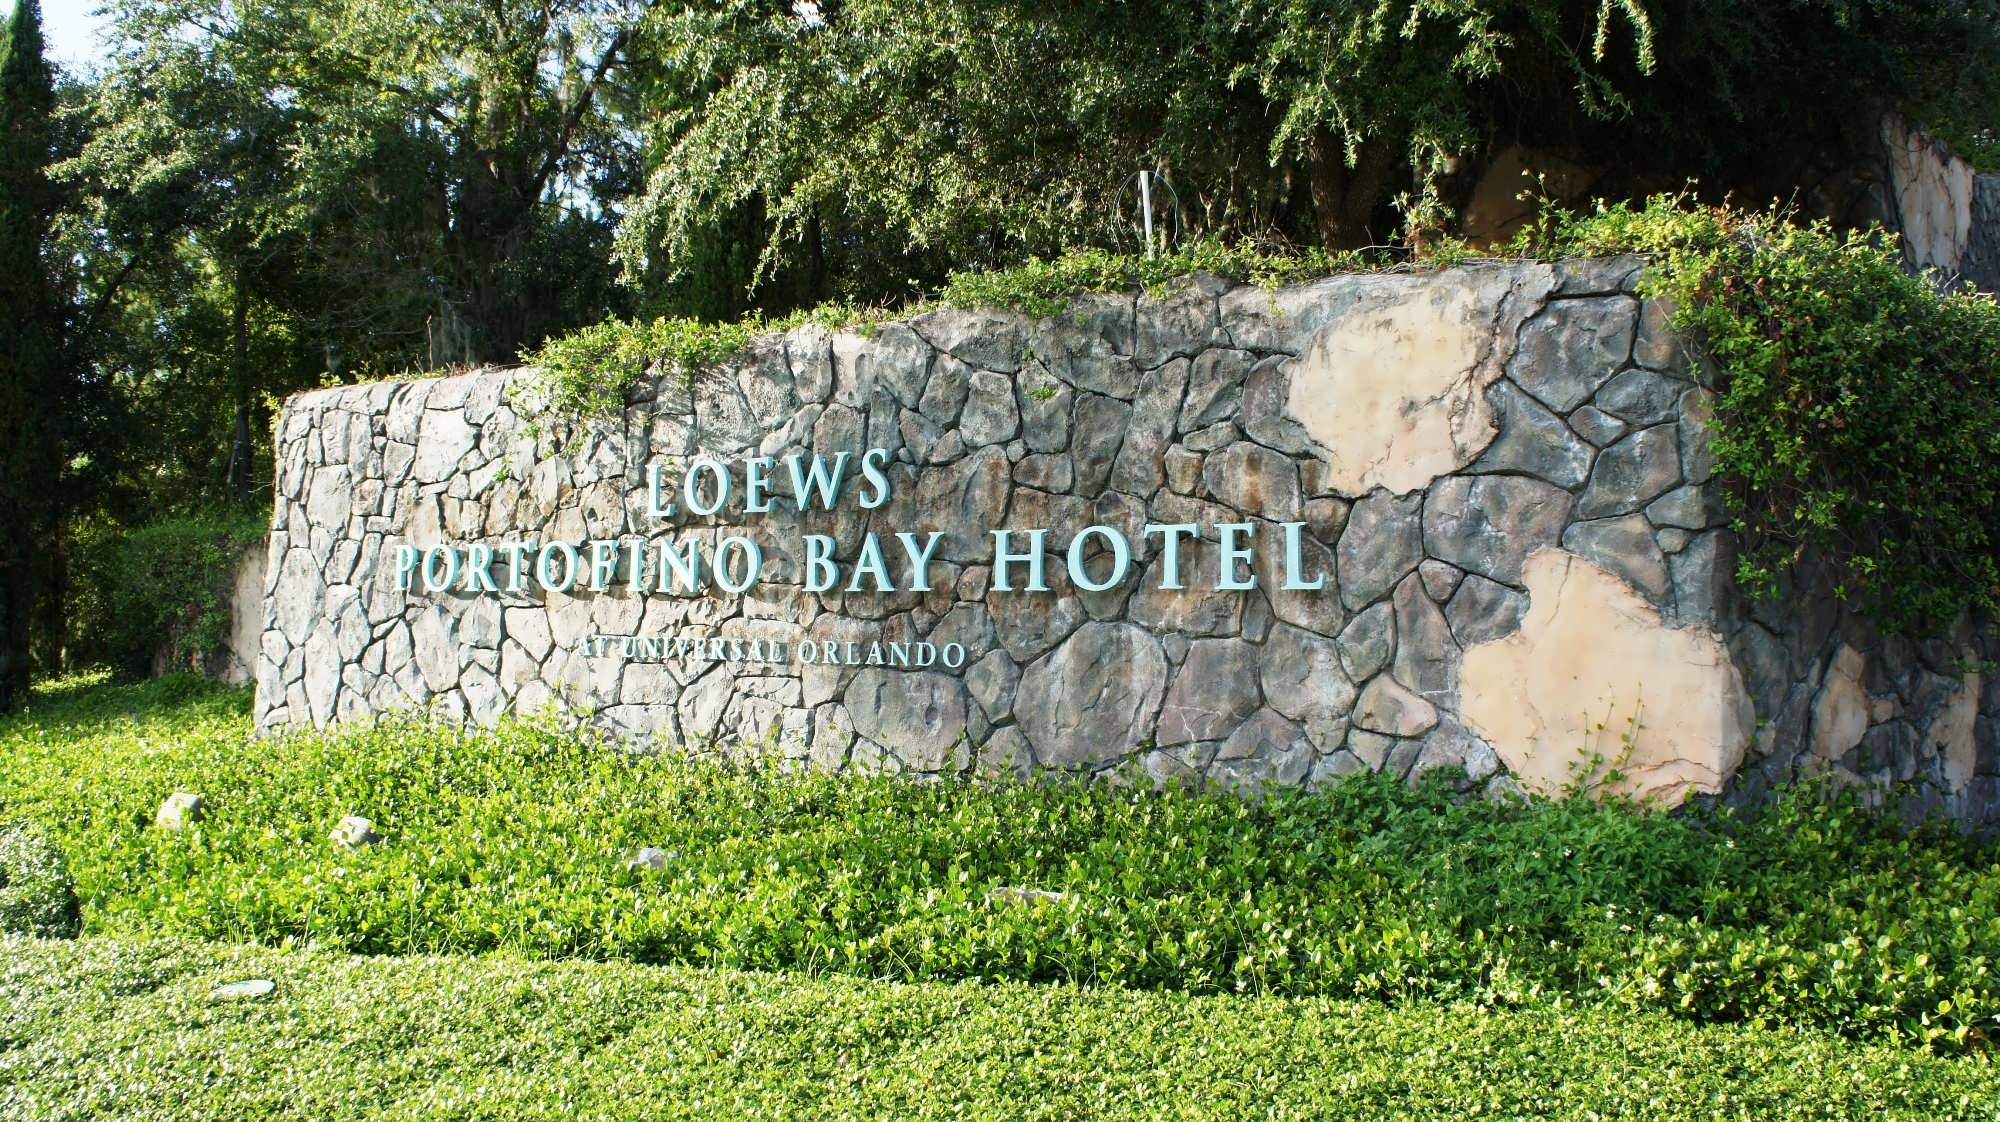 Loews Portofino Bay Hotel entrance sign